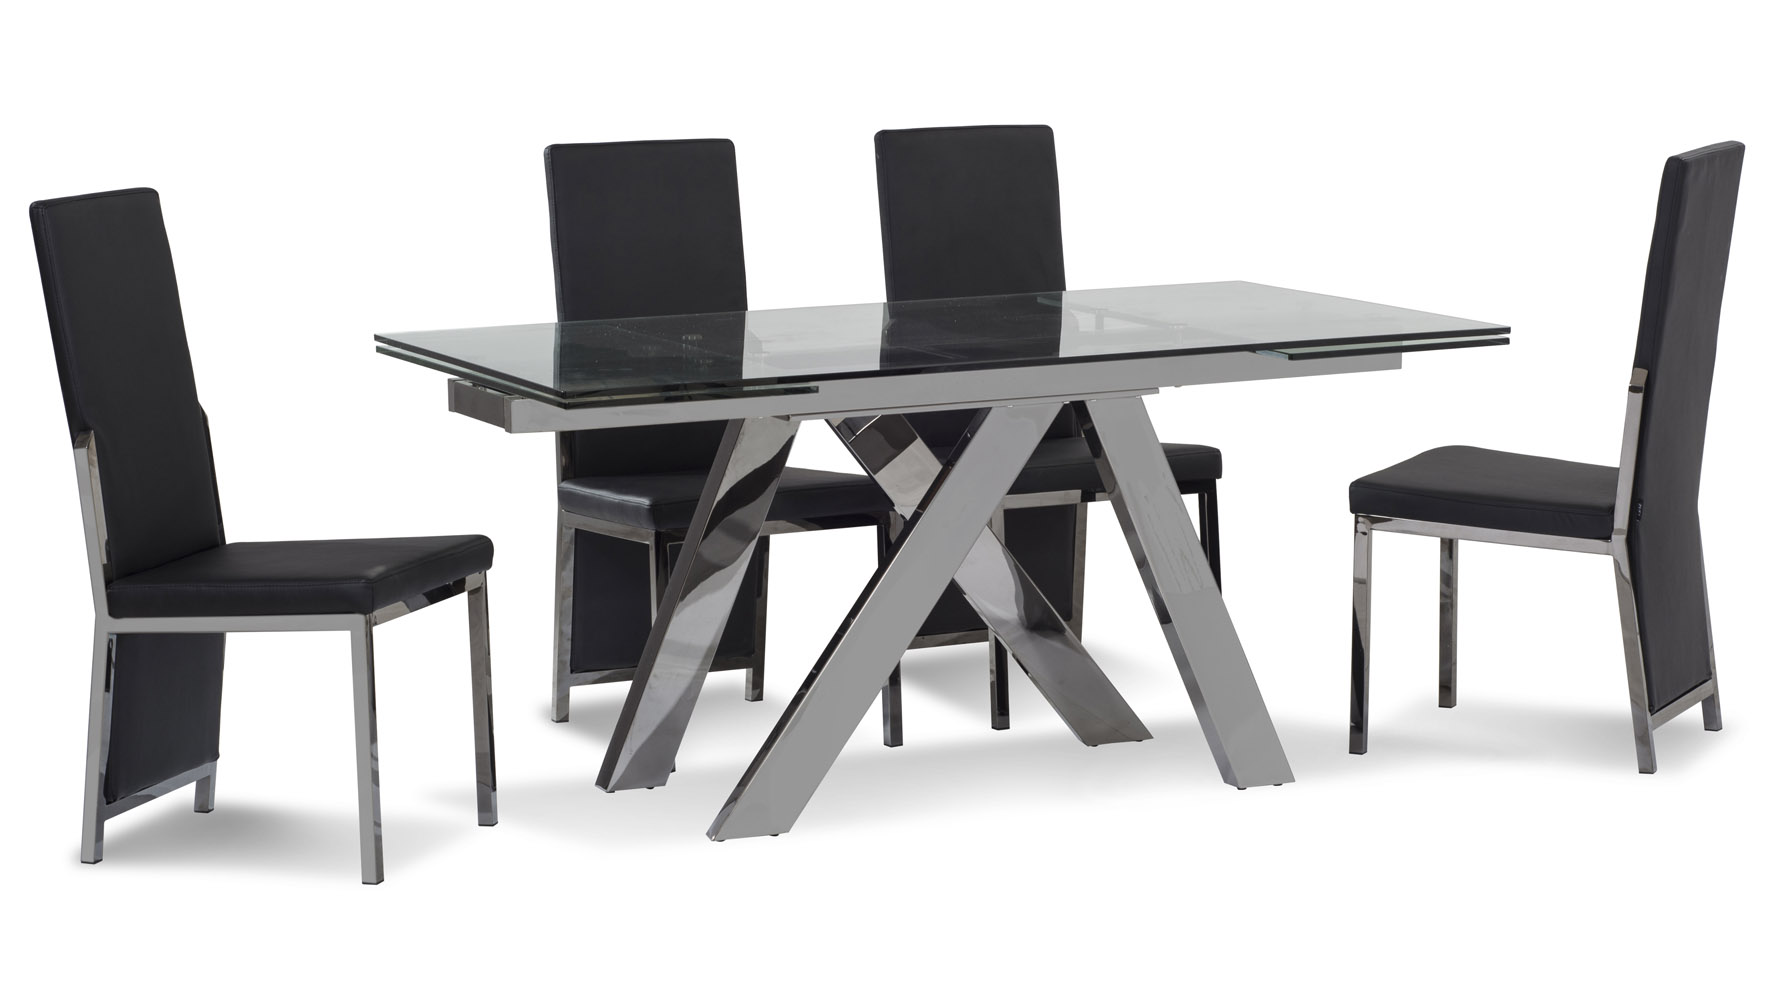 cruz expandable modern dining table with clear glass top YH 31097CLR 758576558349 2